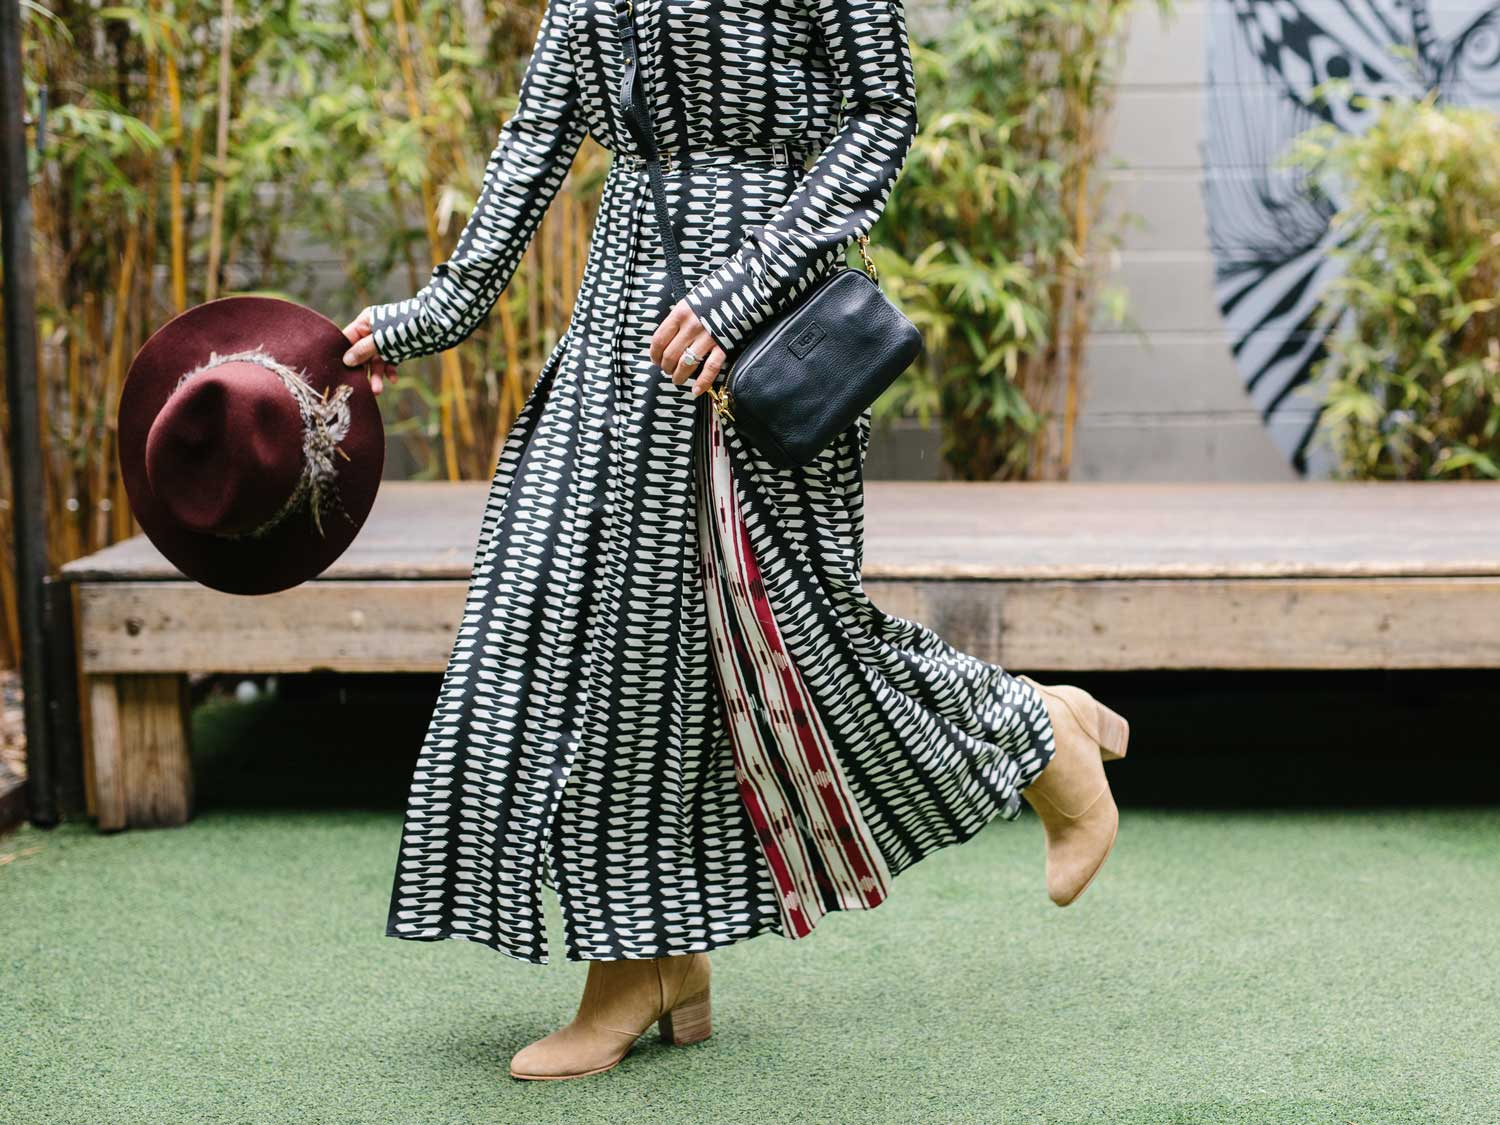 Gen's favorite casual maxi dress and boho hat